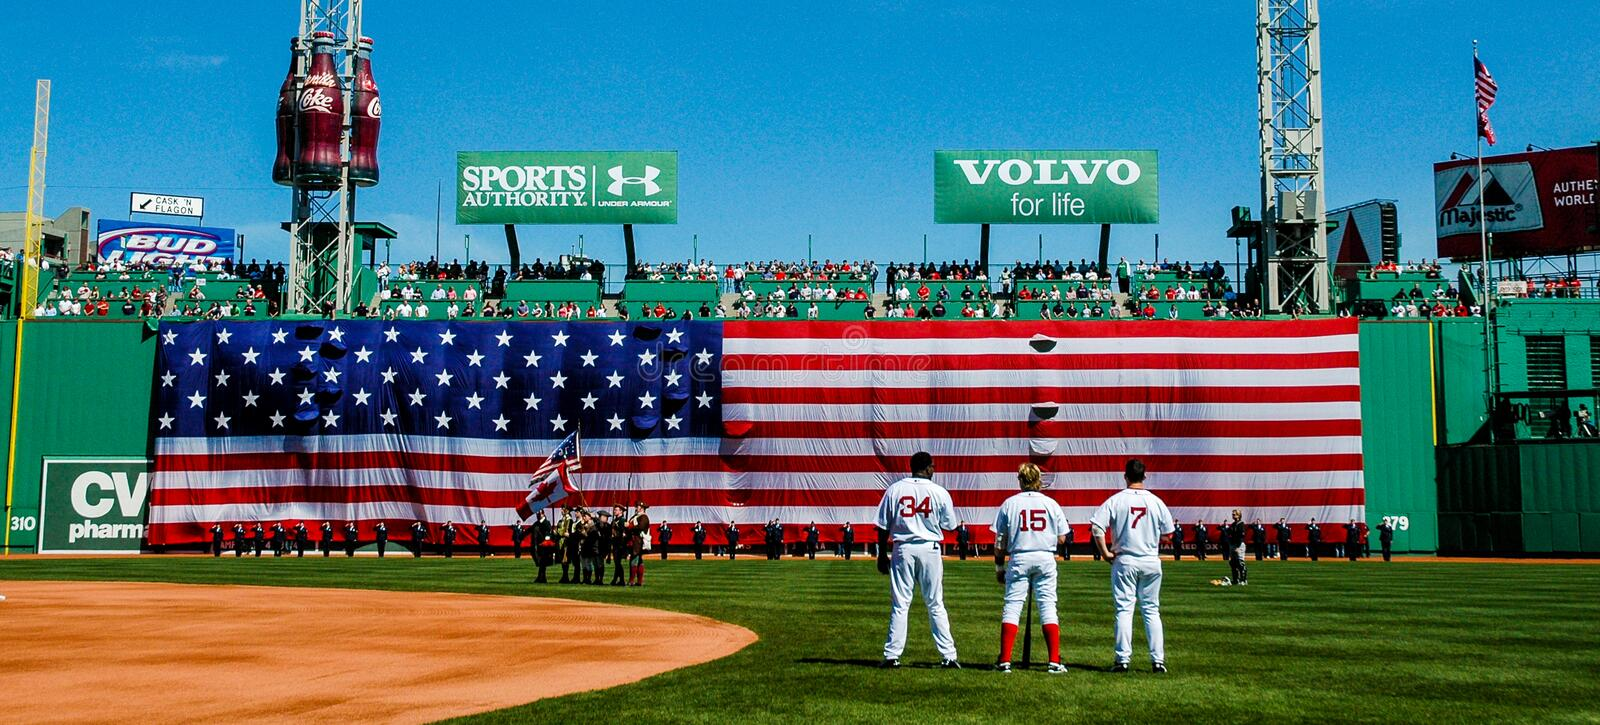 The National Anthem at Fenway Park. Red Sox David Ortiz (34), Kevin Millar (15) and Trot Nixon (7) observe the National Anthem at Fenway Park, Boston, MA royalty free stock photography